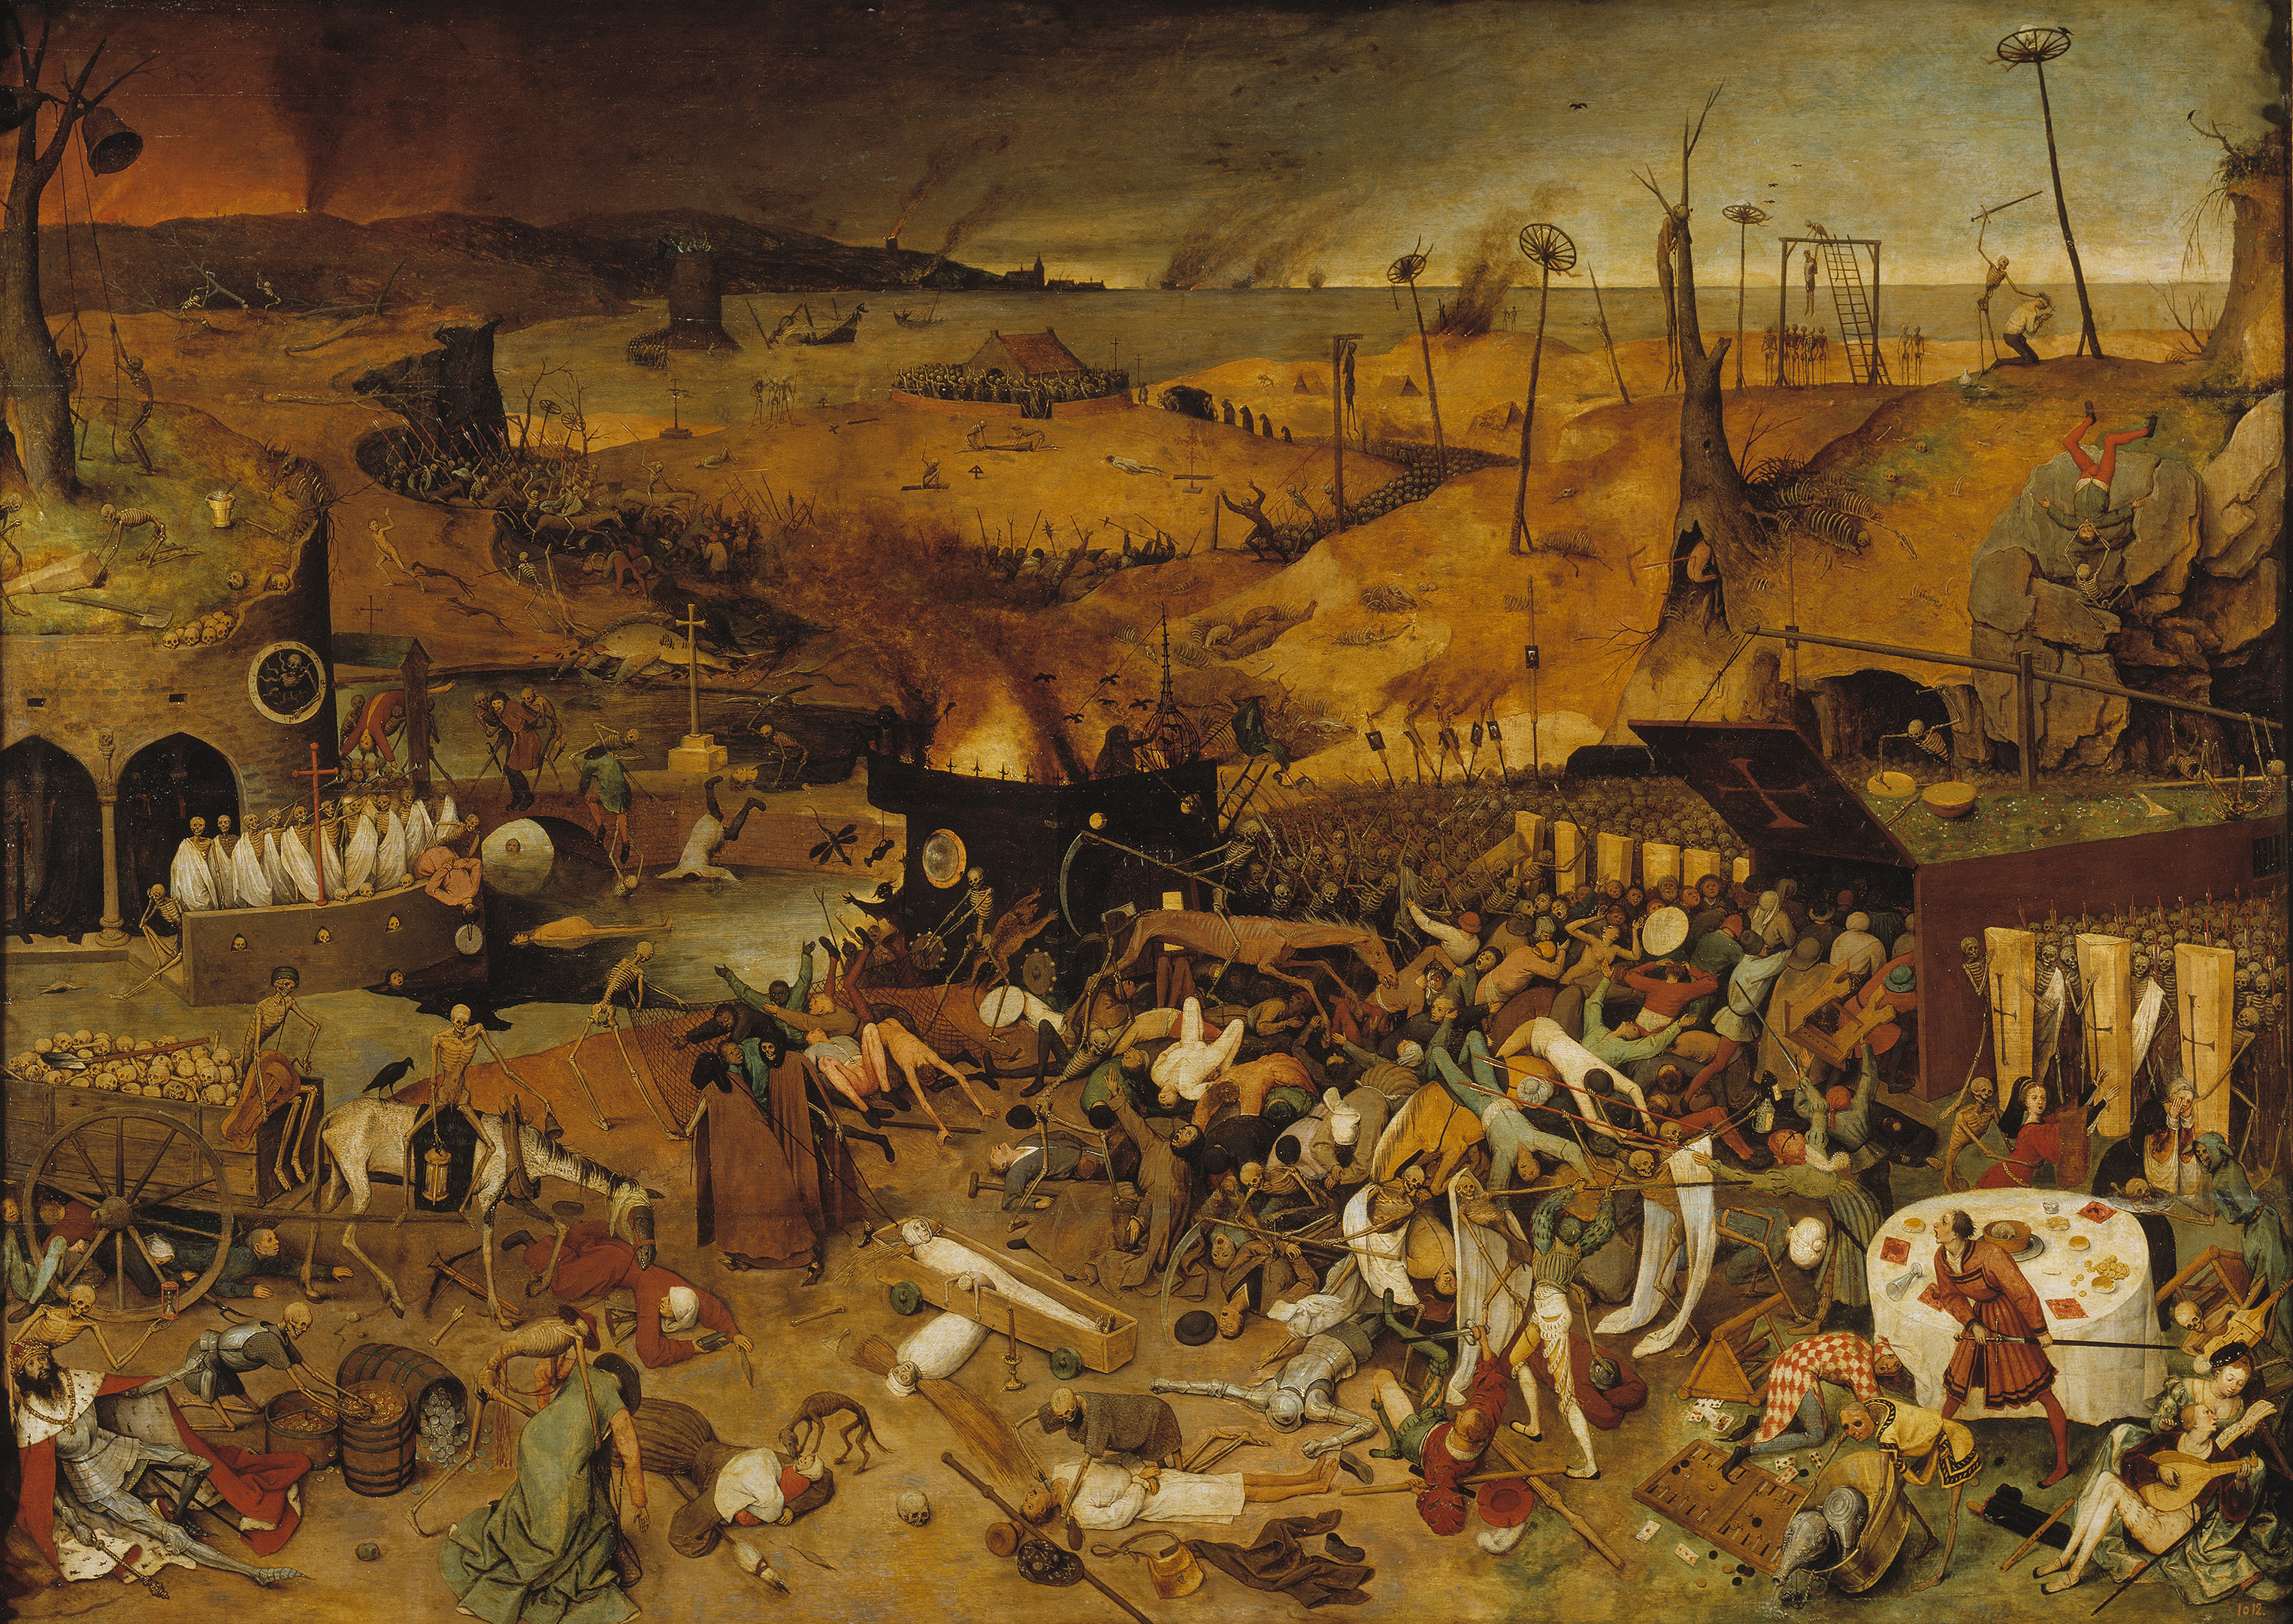 an analysis of the concept of black death in europe Pdf | in 1347 the black death was introduced from the north-eastern coast of the  black  an interpretation that is based on ambiguous phrasings in the text   long-term persistence of y pestis in europe from the 14th to the 17th century.